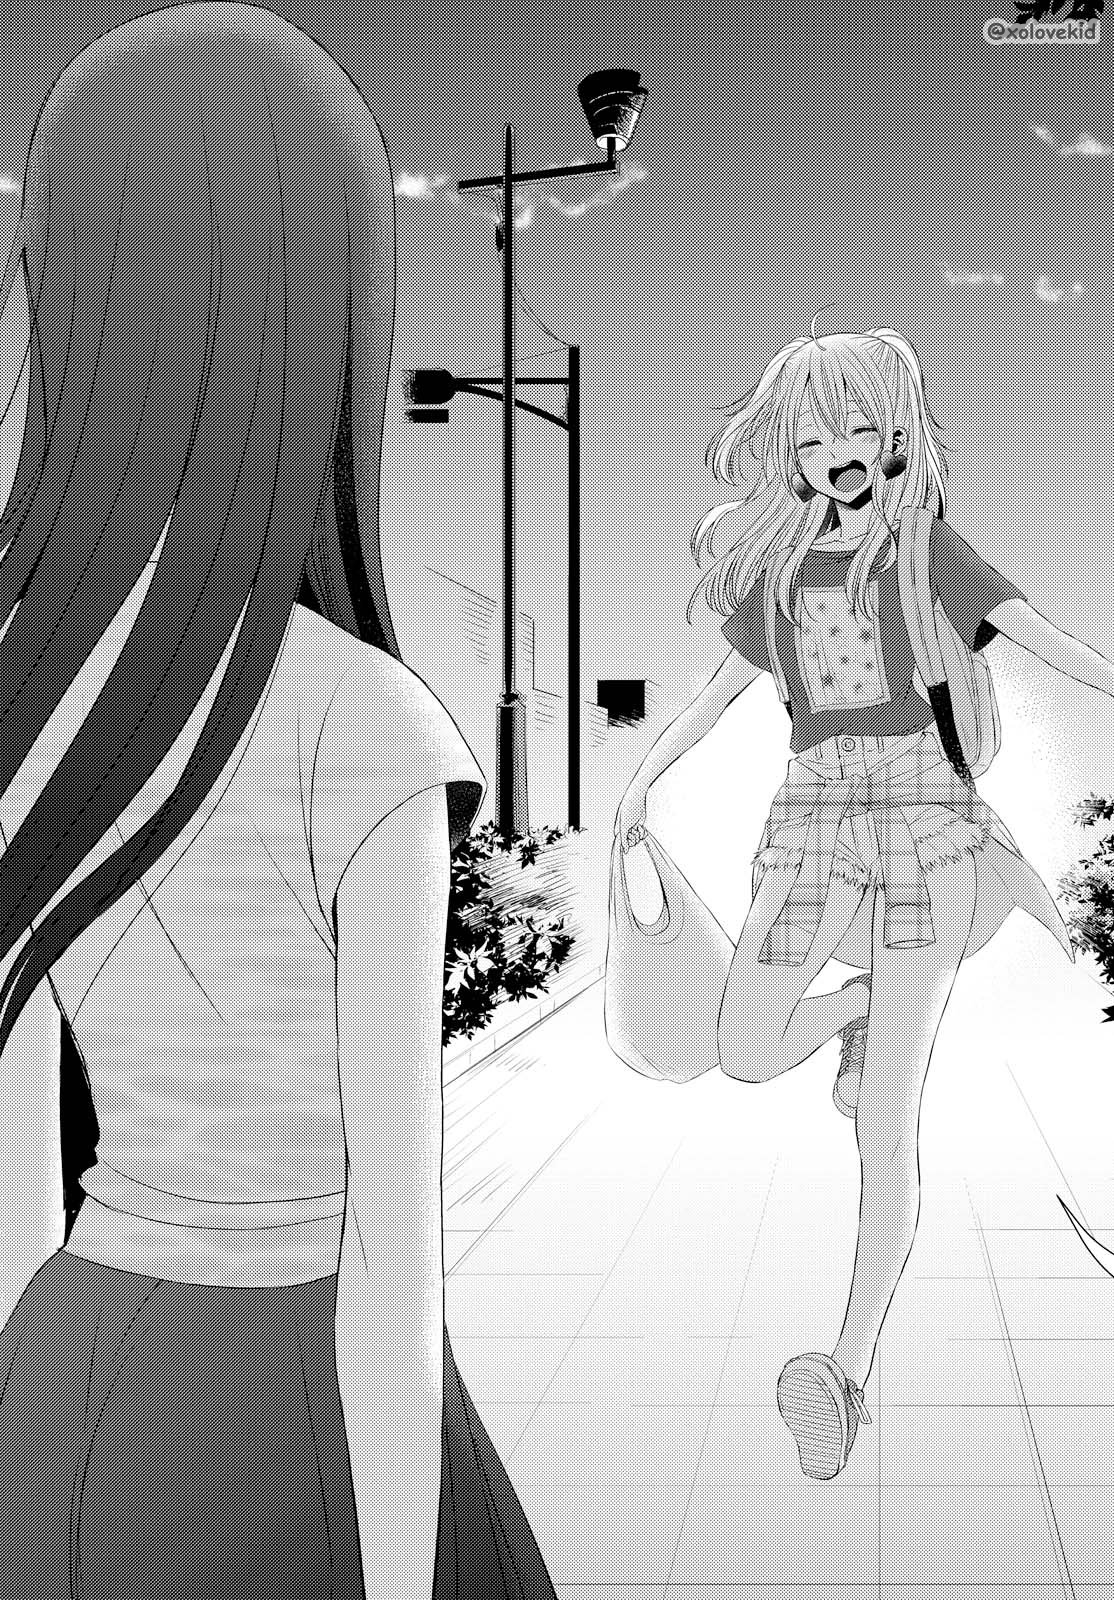 Baca Manga Citrus Chapter 29 Bahasa Indonesia